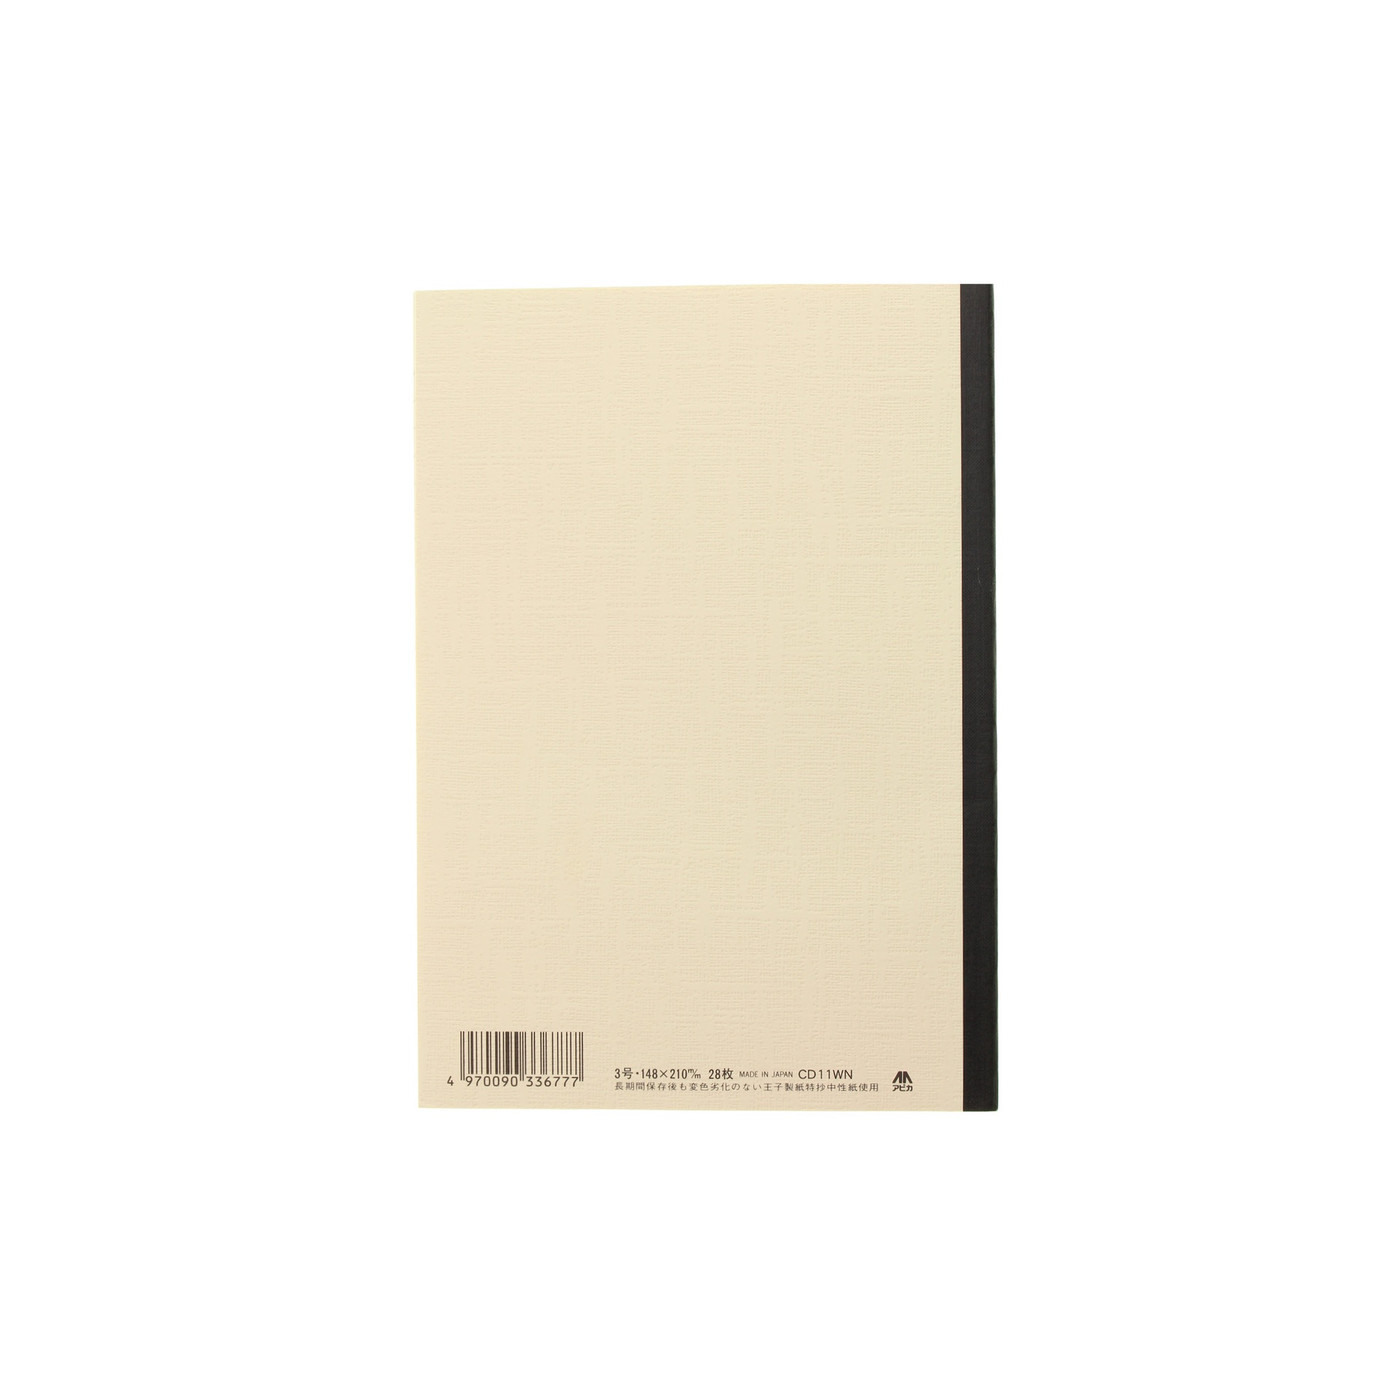 Apica CD11 notebook - A5 LINED